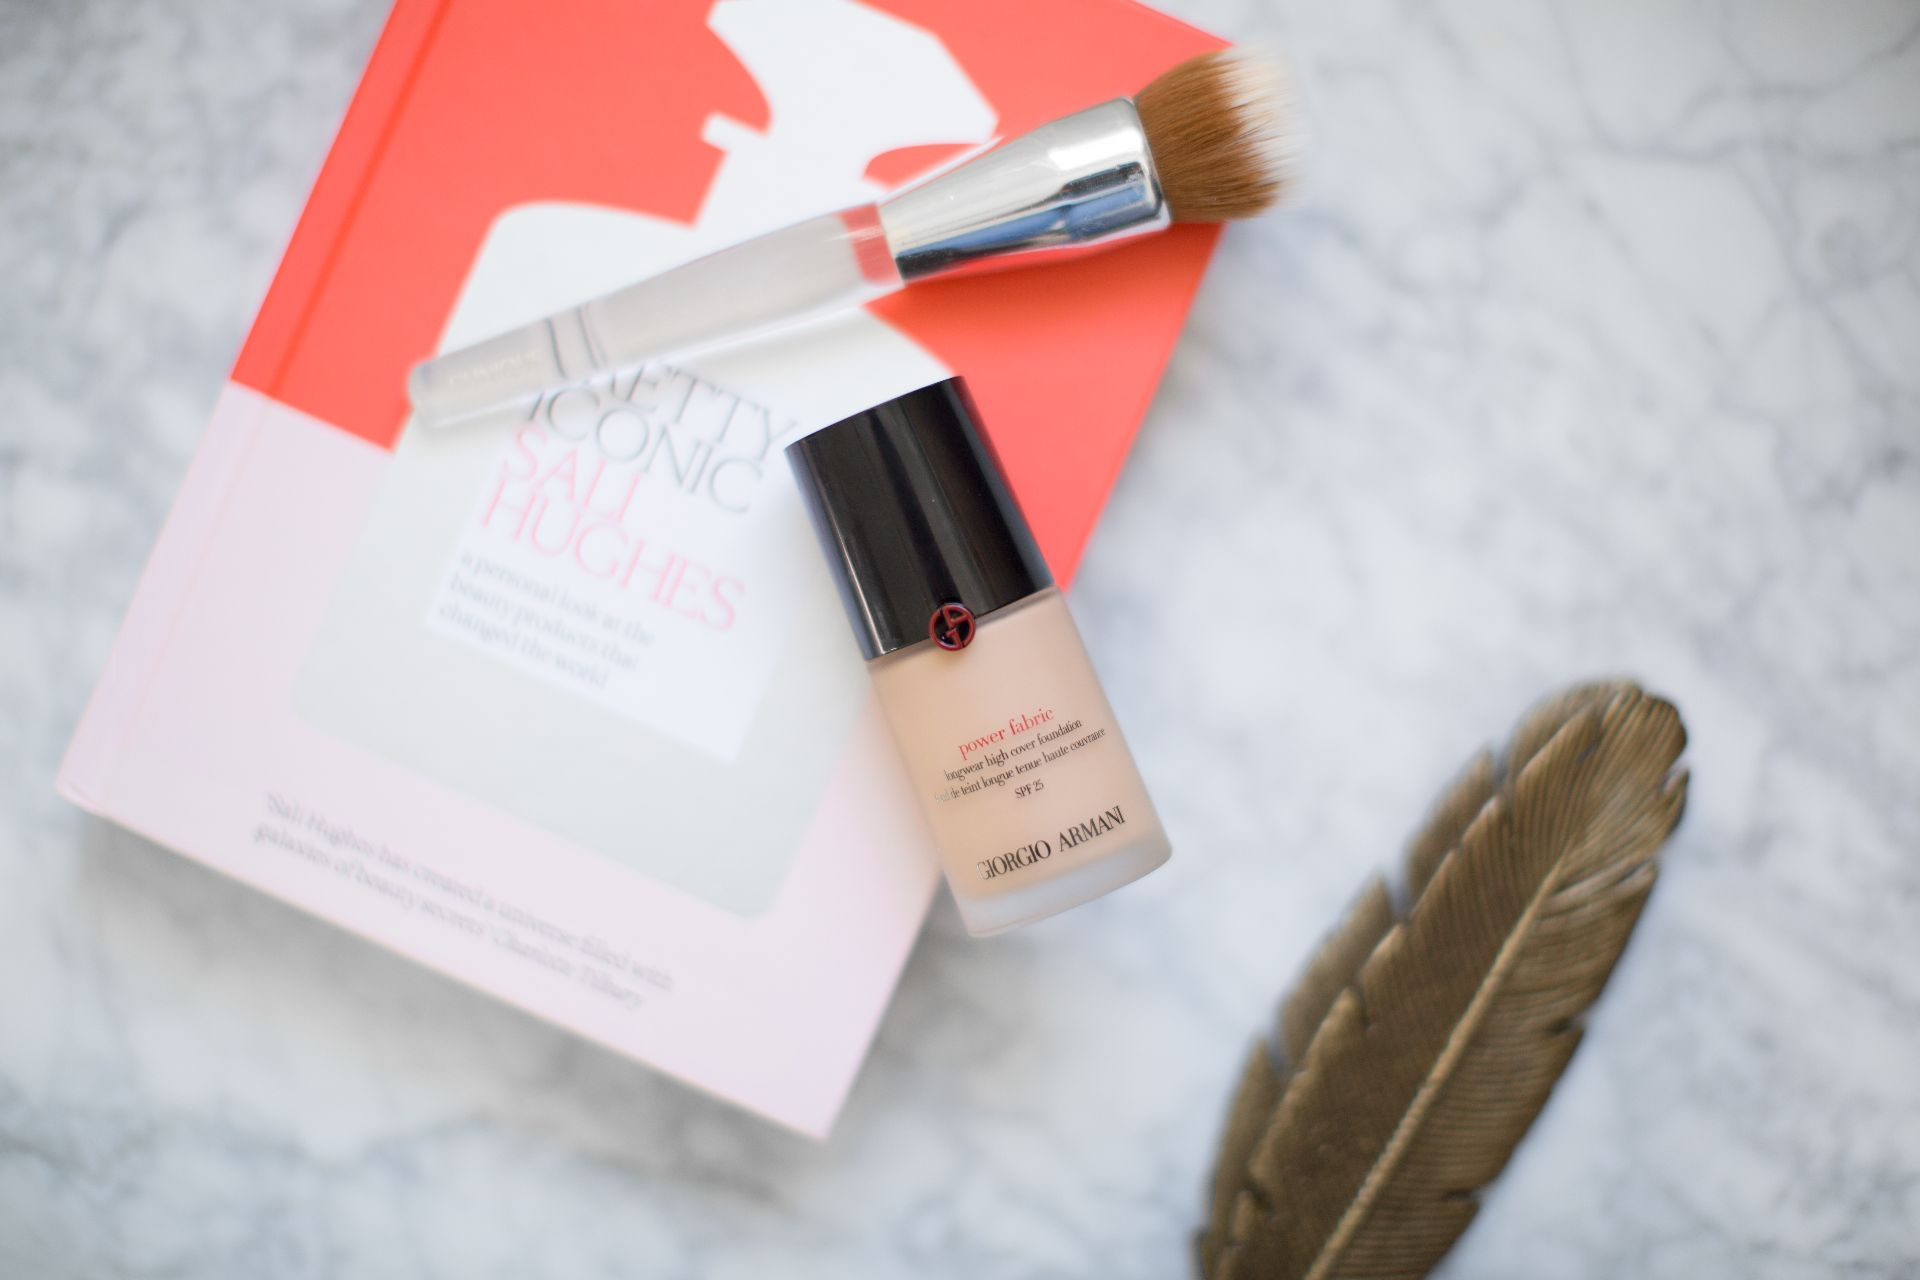 theannaedit-giorgio-armani-power-fabric-foundation-review-march-2017-1